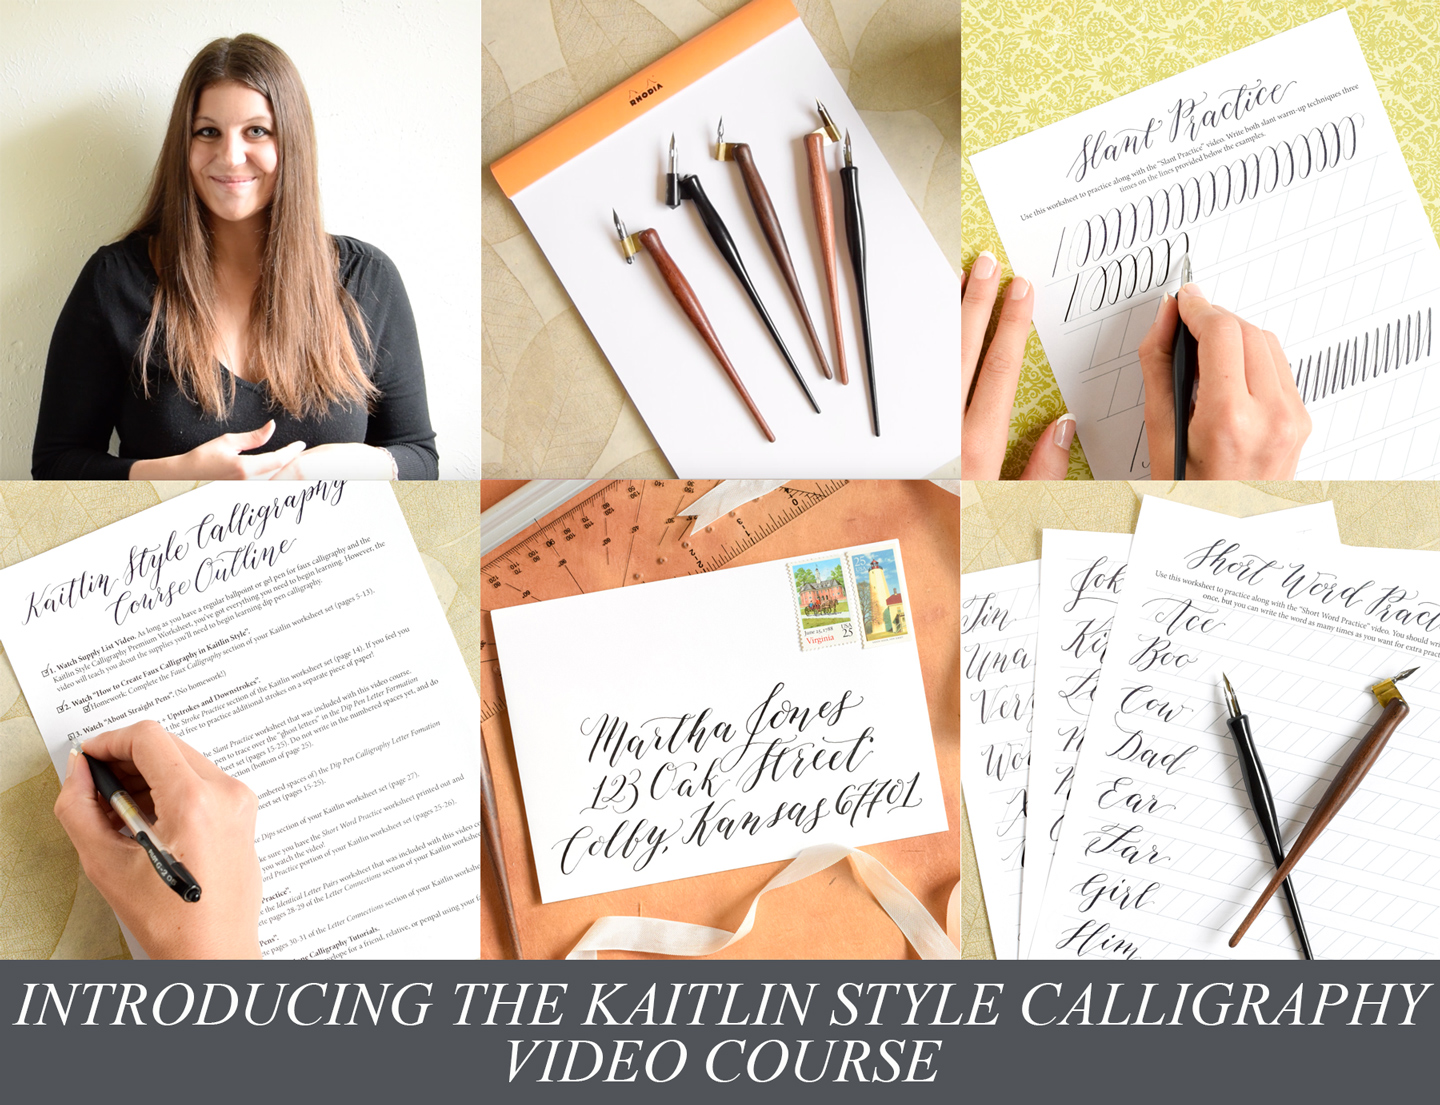 Introducing the Kaitlin Style Video Course | The Postman's Knock